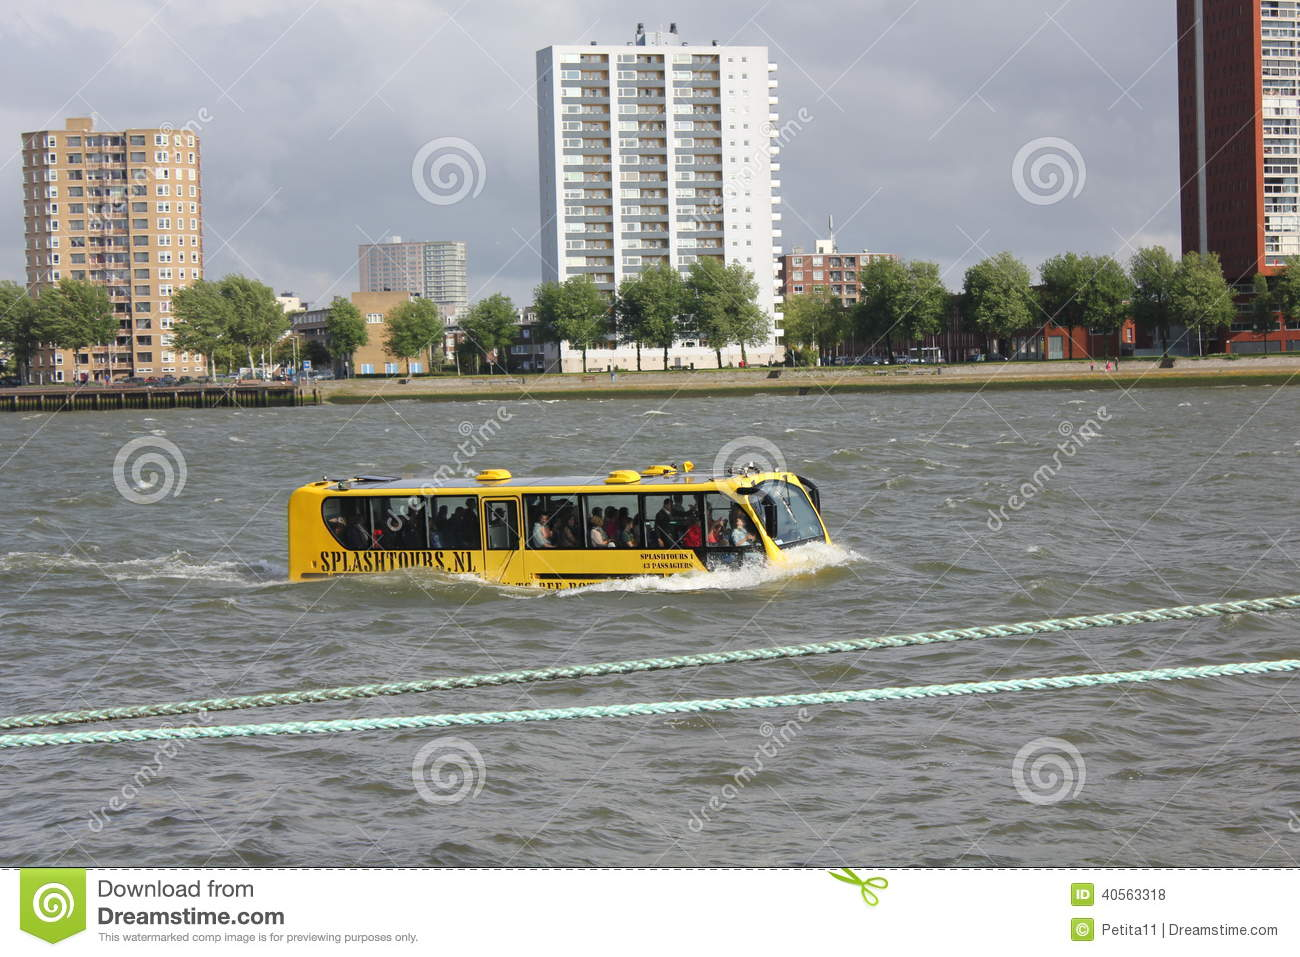 Unique Amphibian (Land And Water) Bus On River Maa Editorial Stock